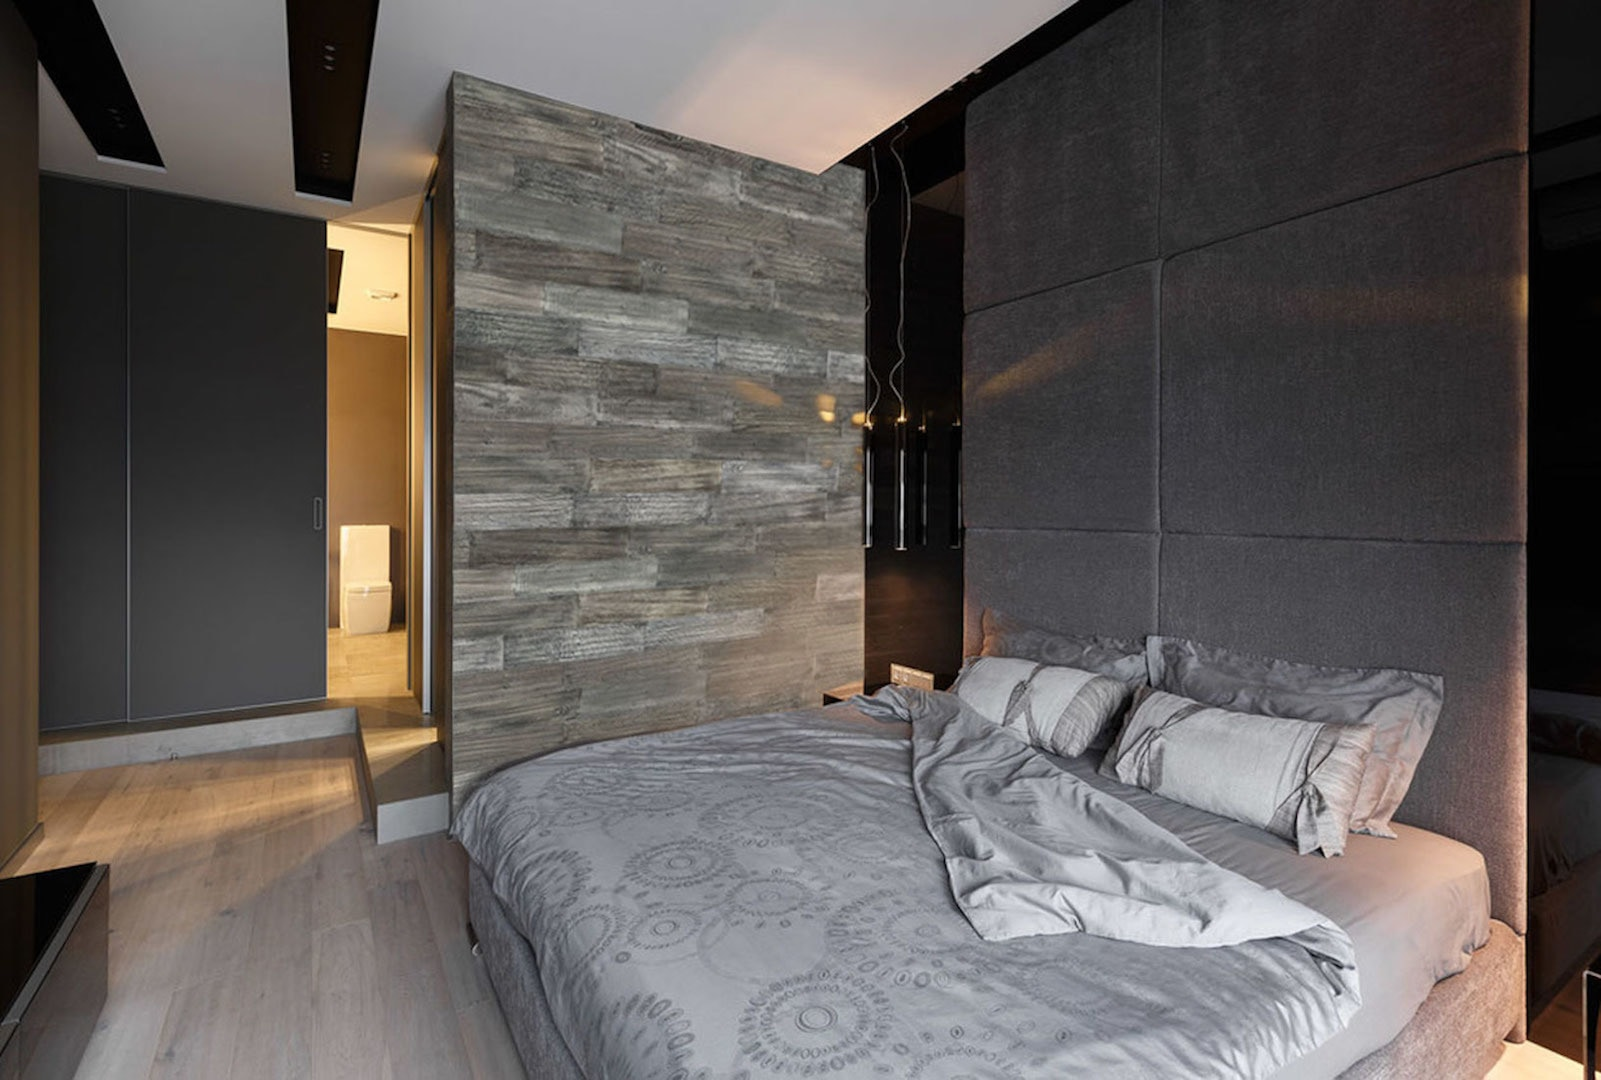 Smart Wall Paneling 3D Barn Wood Gray Reclaimed DIY Smart Wall Planks (10  Sq. Ft. / Case) Barn Wood / 23.75 X 5 X 0.25 (in.)